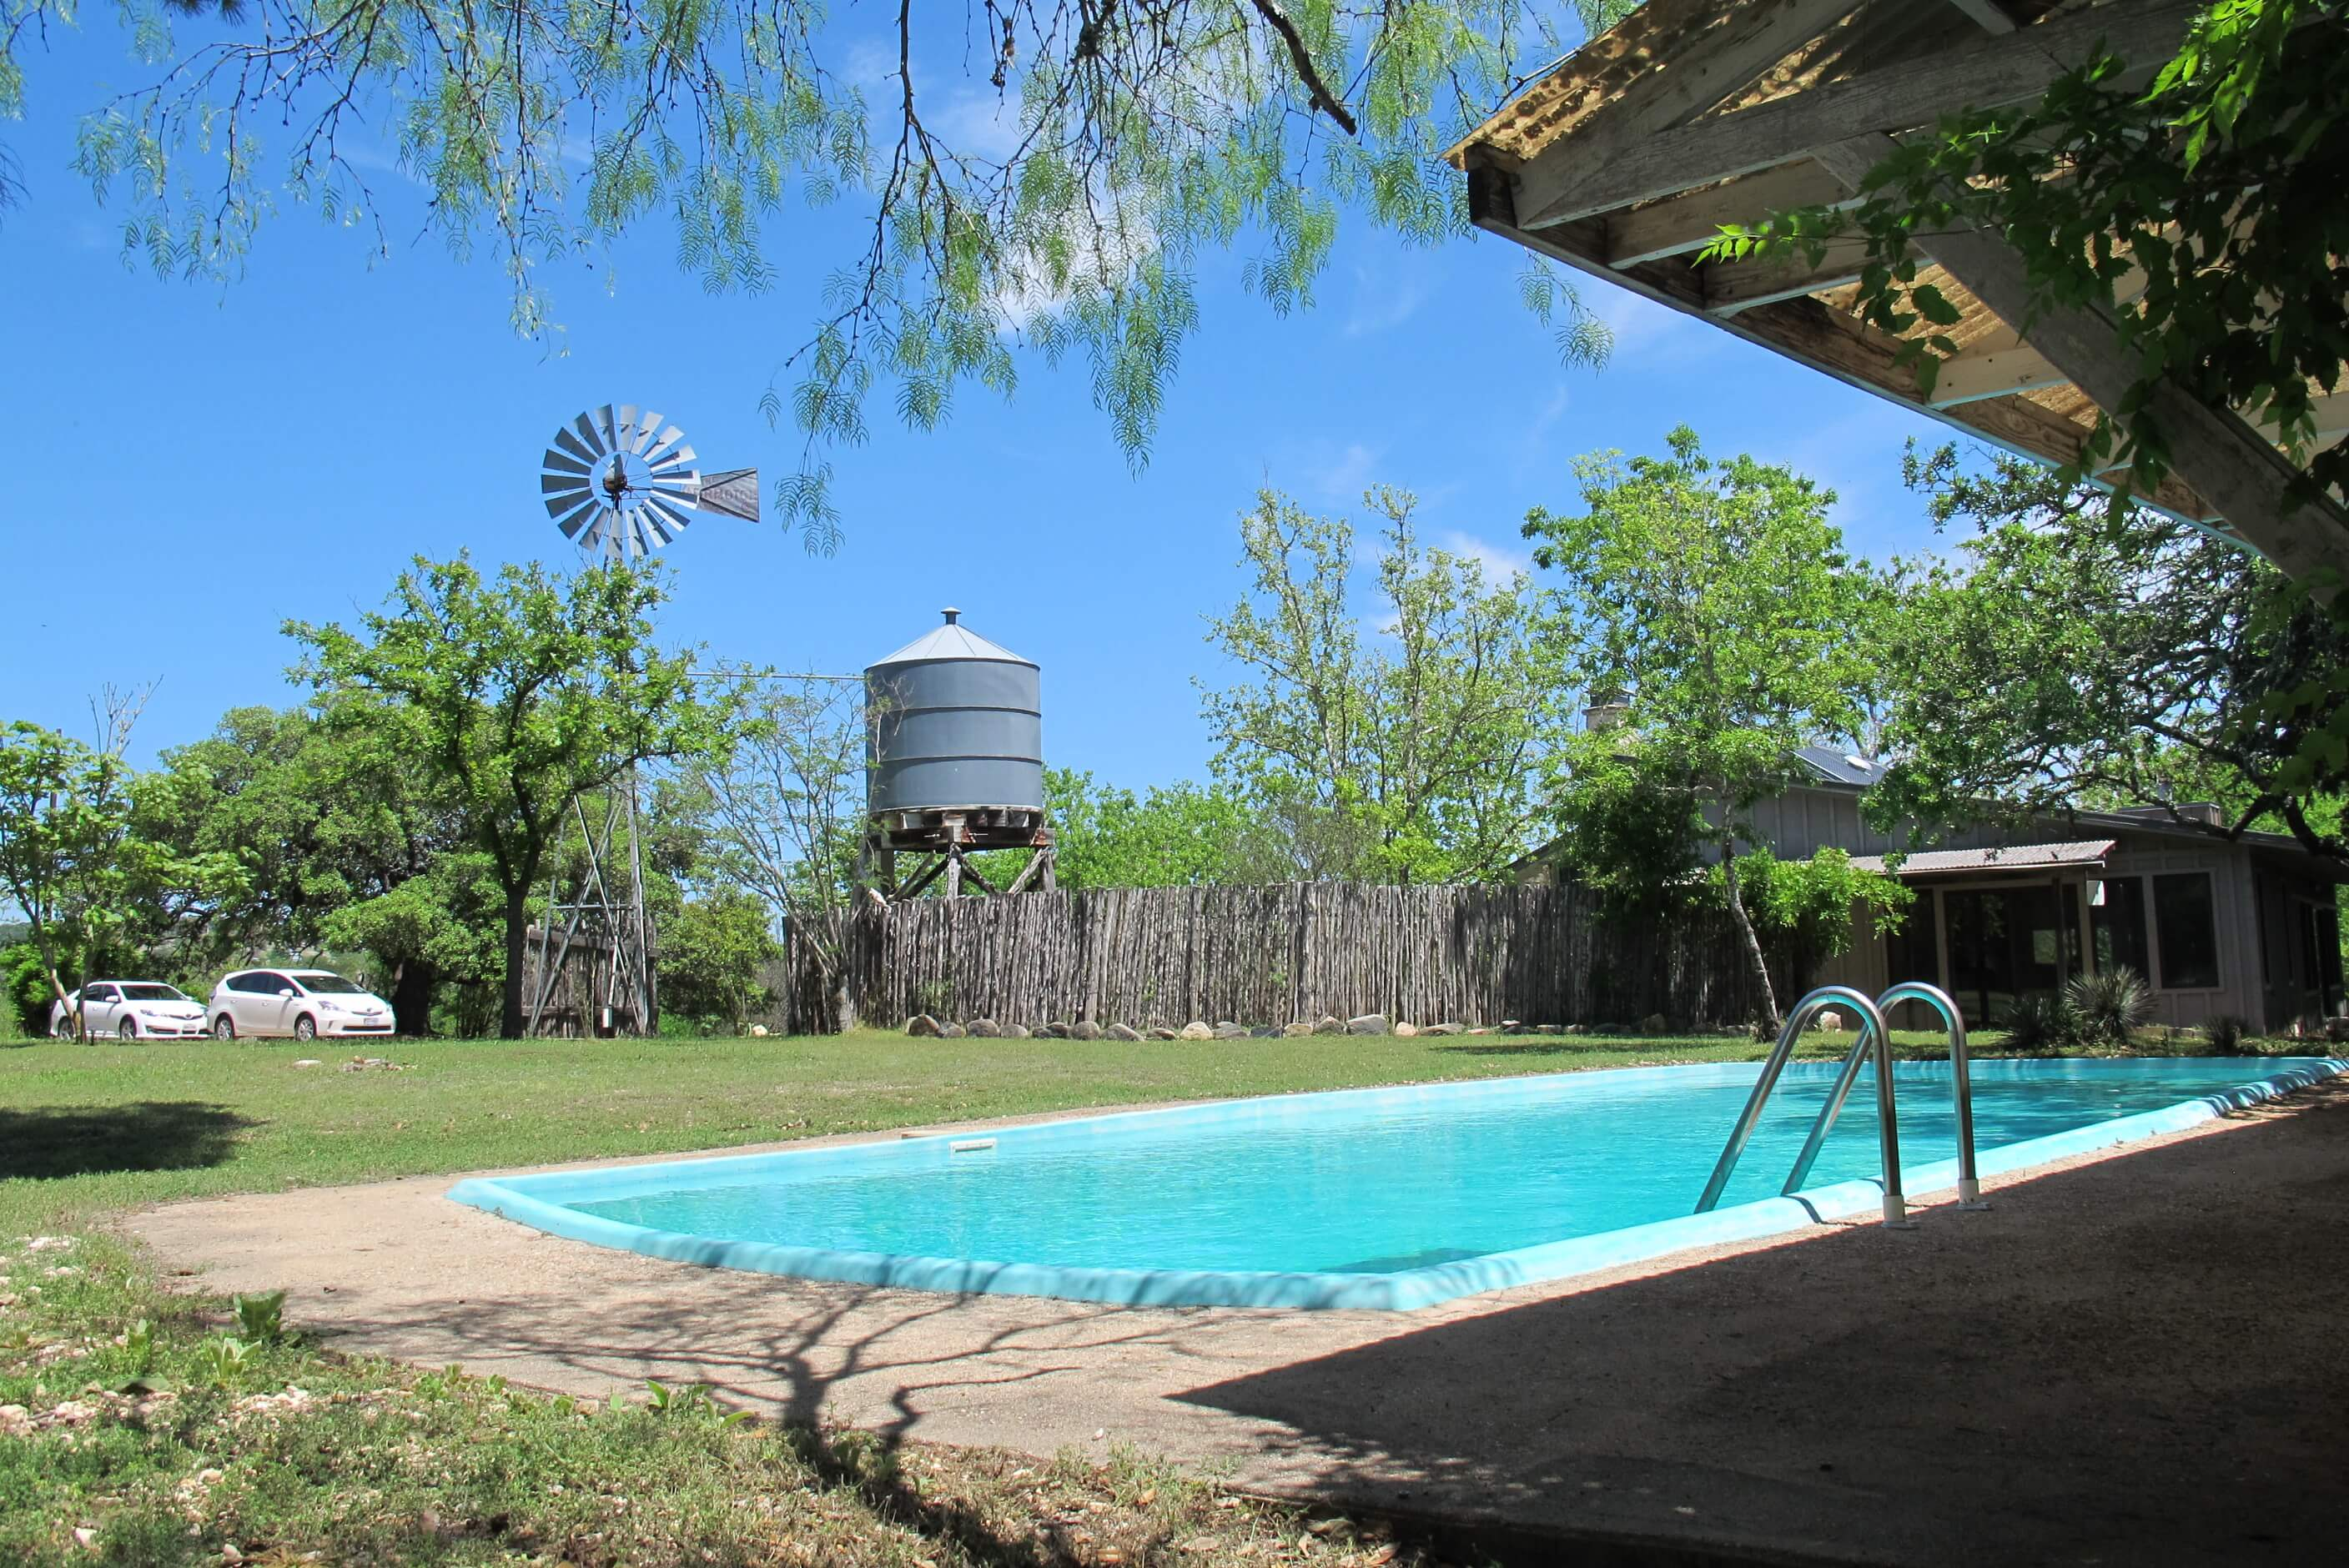 Homes for sale fredericksburg tx - Homes for sale with swimming pool el paso tx ...